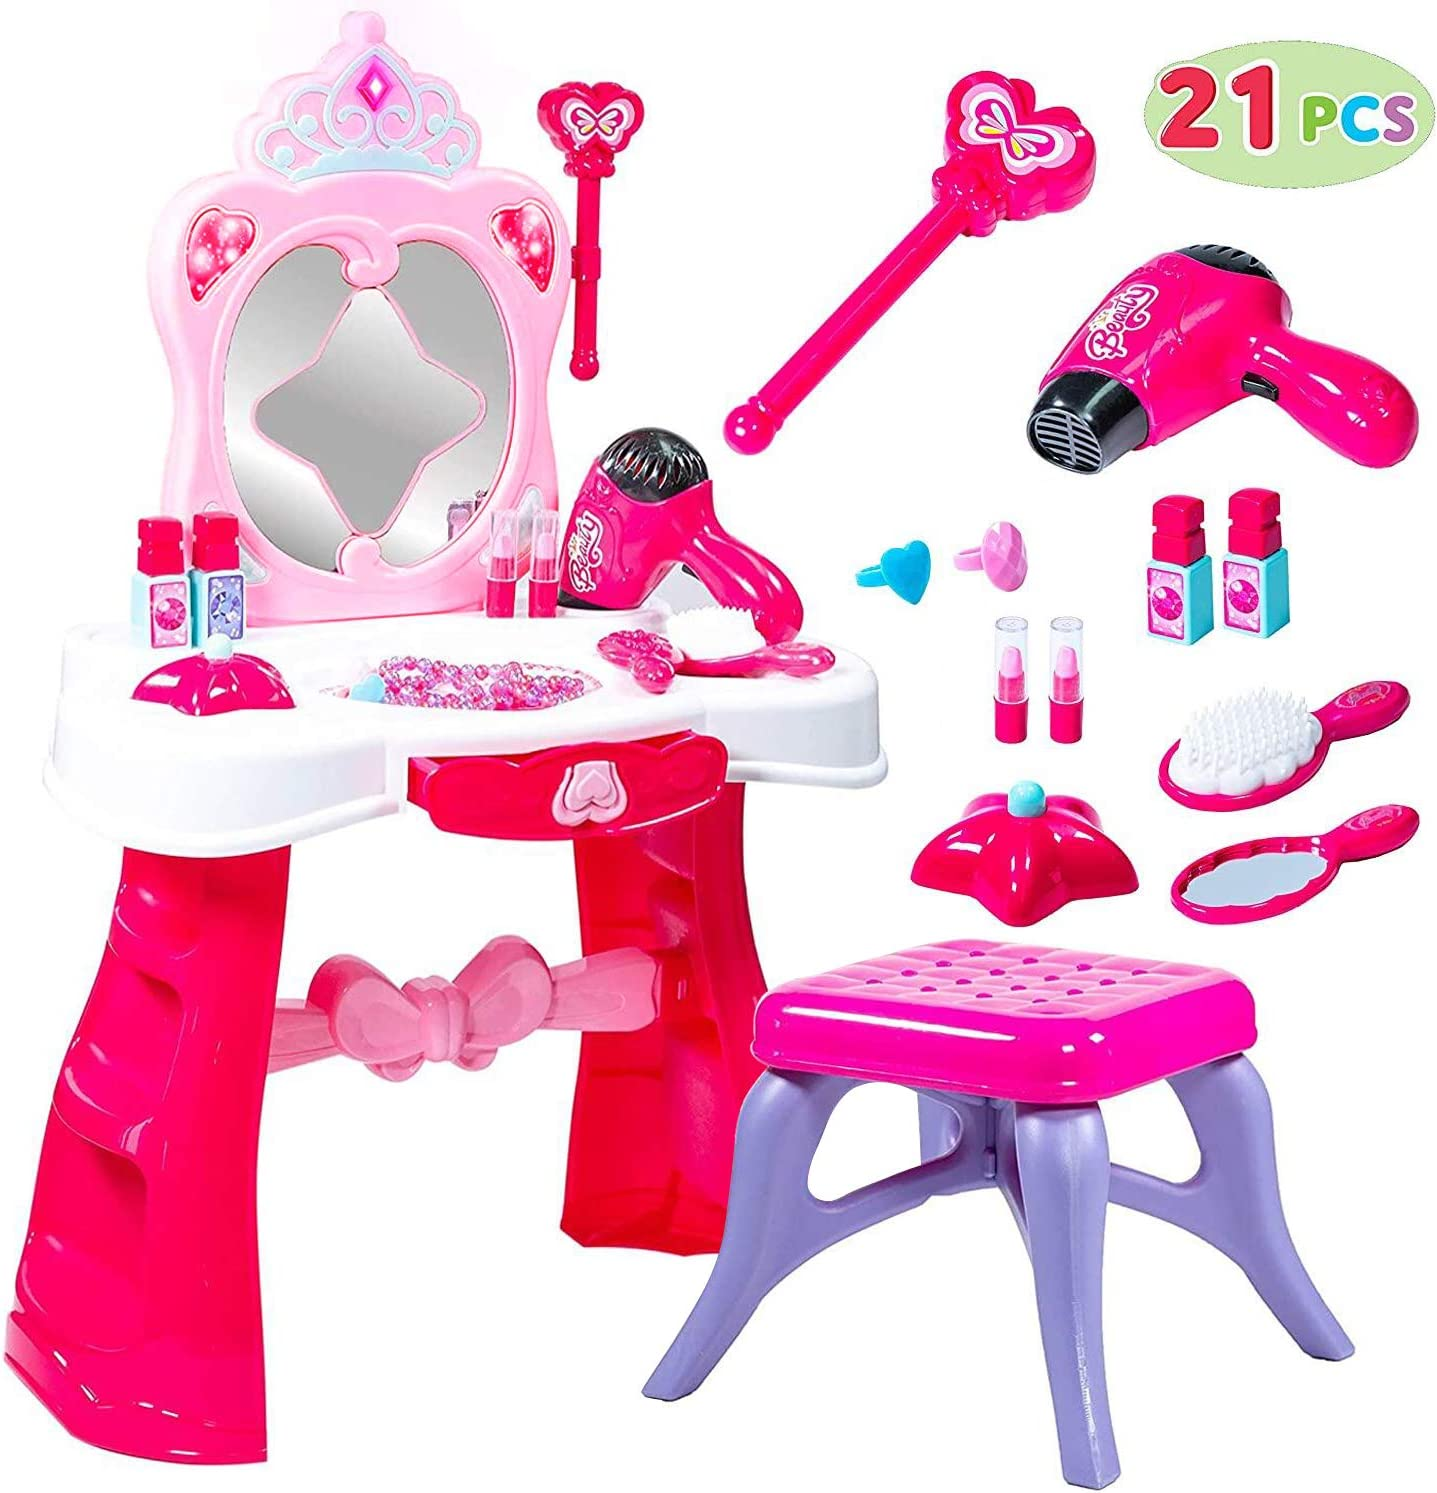 Toddler Fantasy Vanity Beauty Dresser Table Play set with Lights